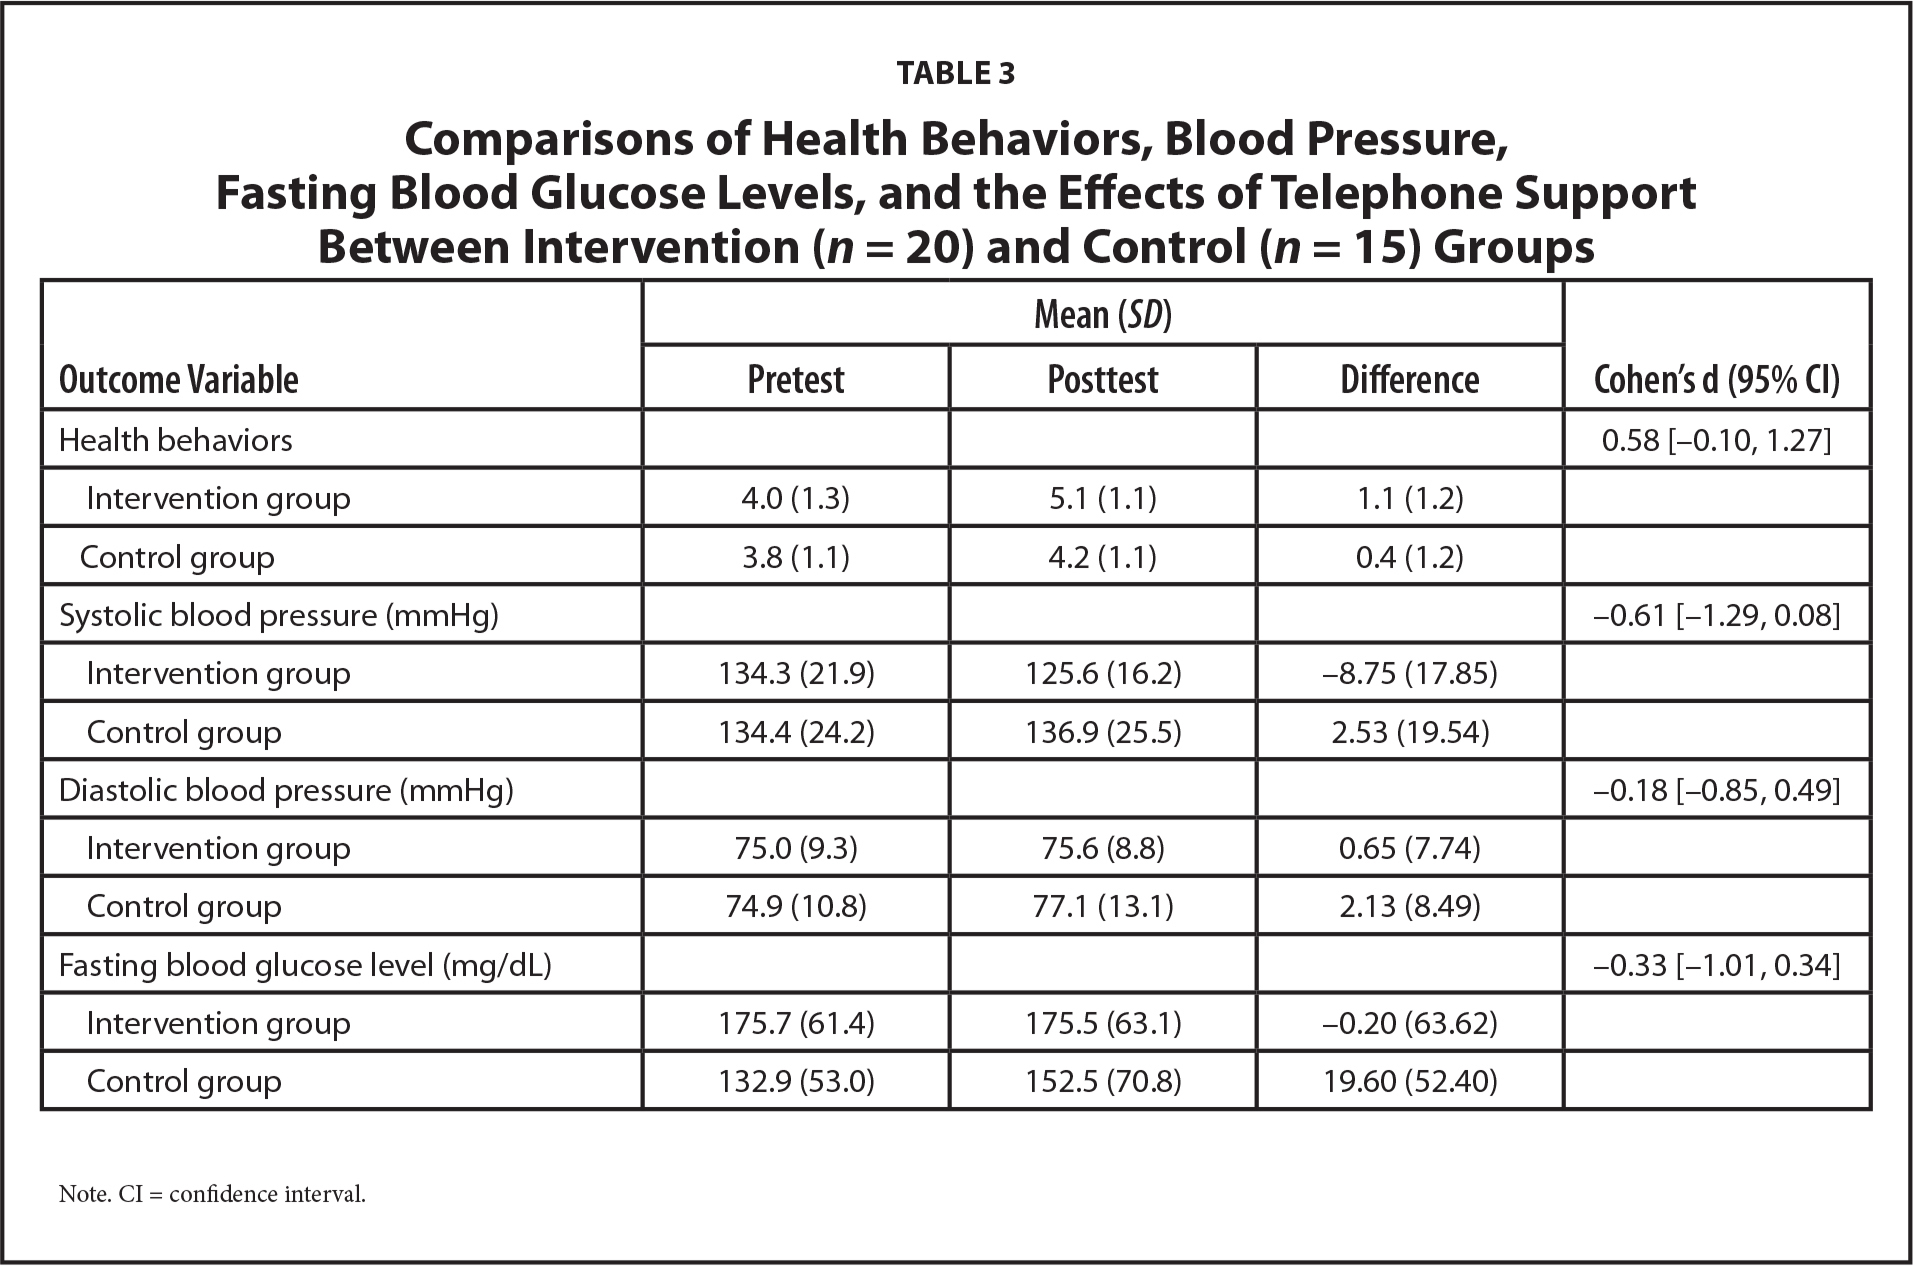 Comparisons of Health Behaviors, Blood Pressure, Fasting Blood Glucose Levels, and the Effects of Telephone Support Between Intervention (n = 20) and Control (n = 15) Groups